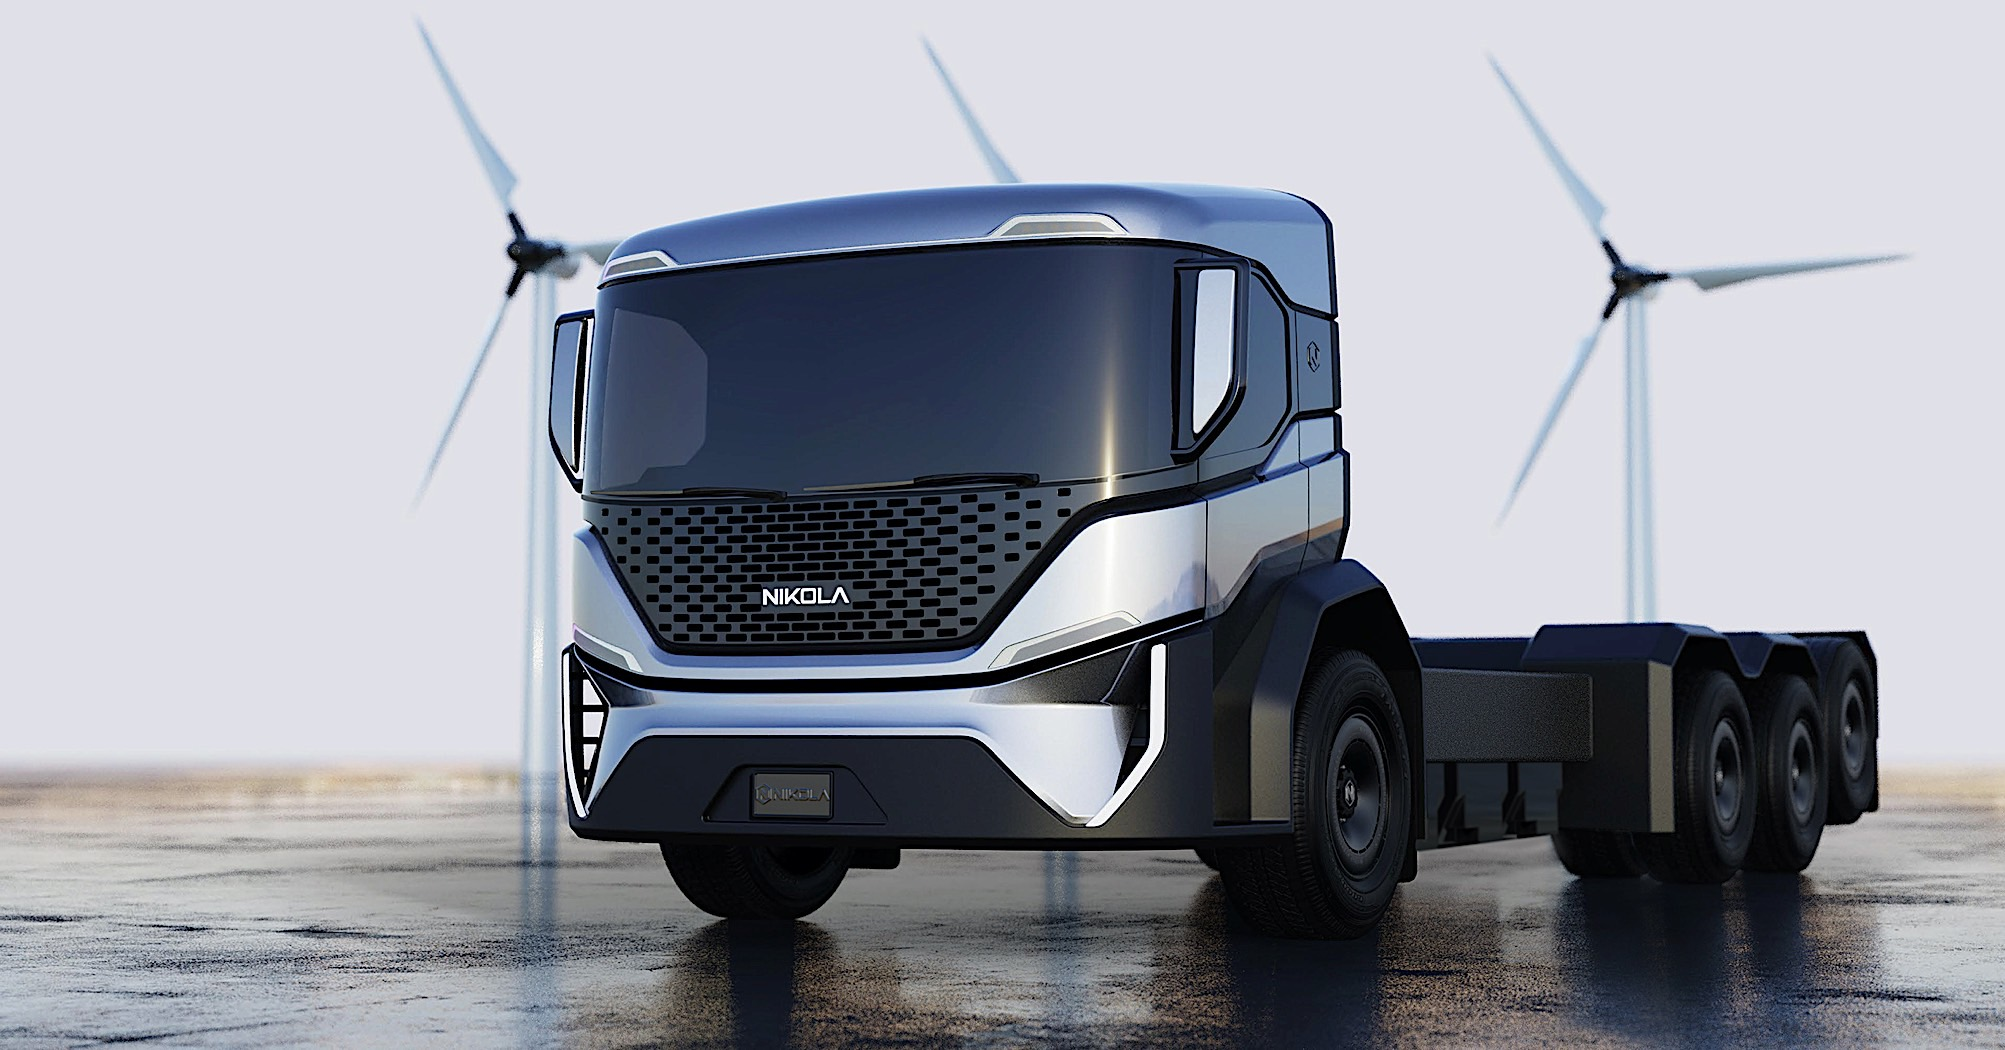 [Inclassable] Le topic des camions - Page 7 1000-hp-nikola-electric-trucks-to-move-trash-around-the-us-from-2023-147254_1